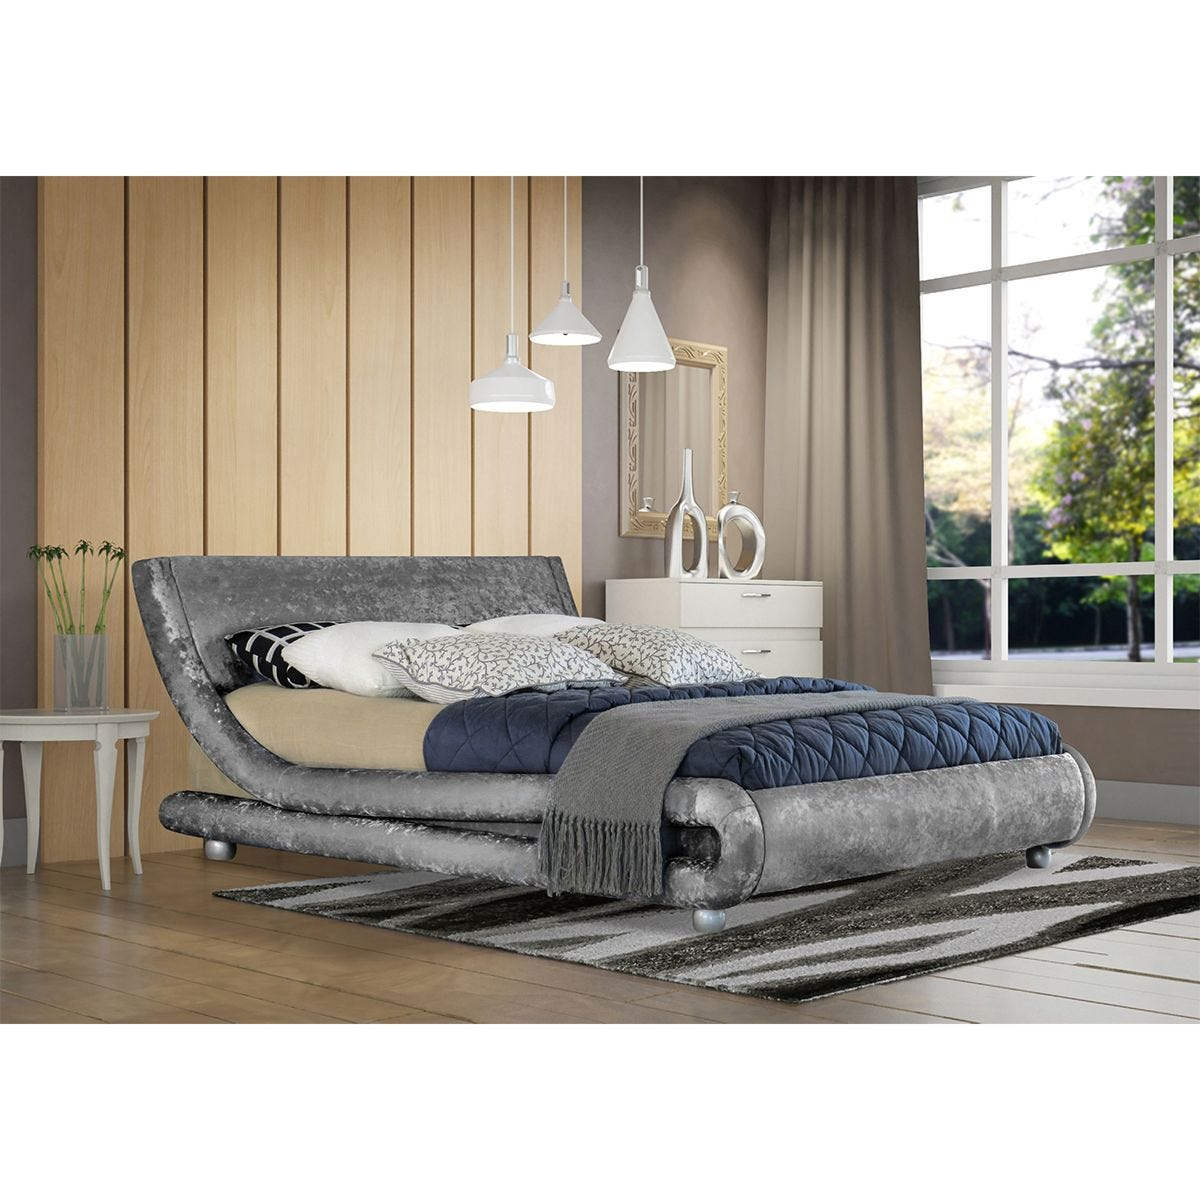 Grayson Double Bed Frame - Silver